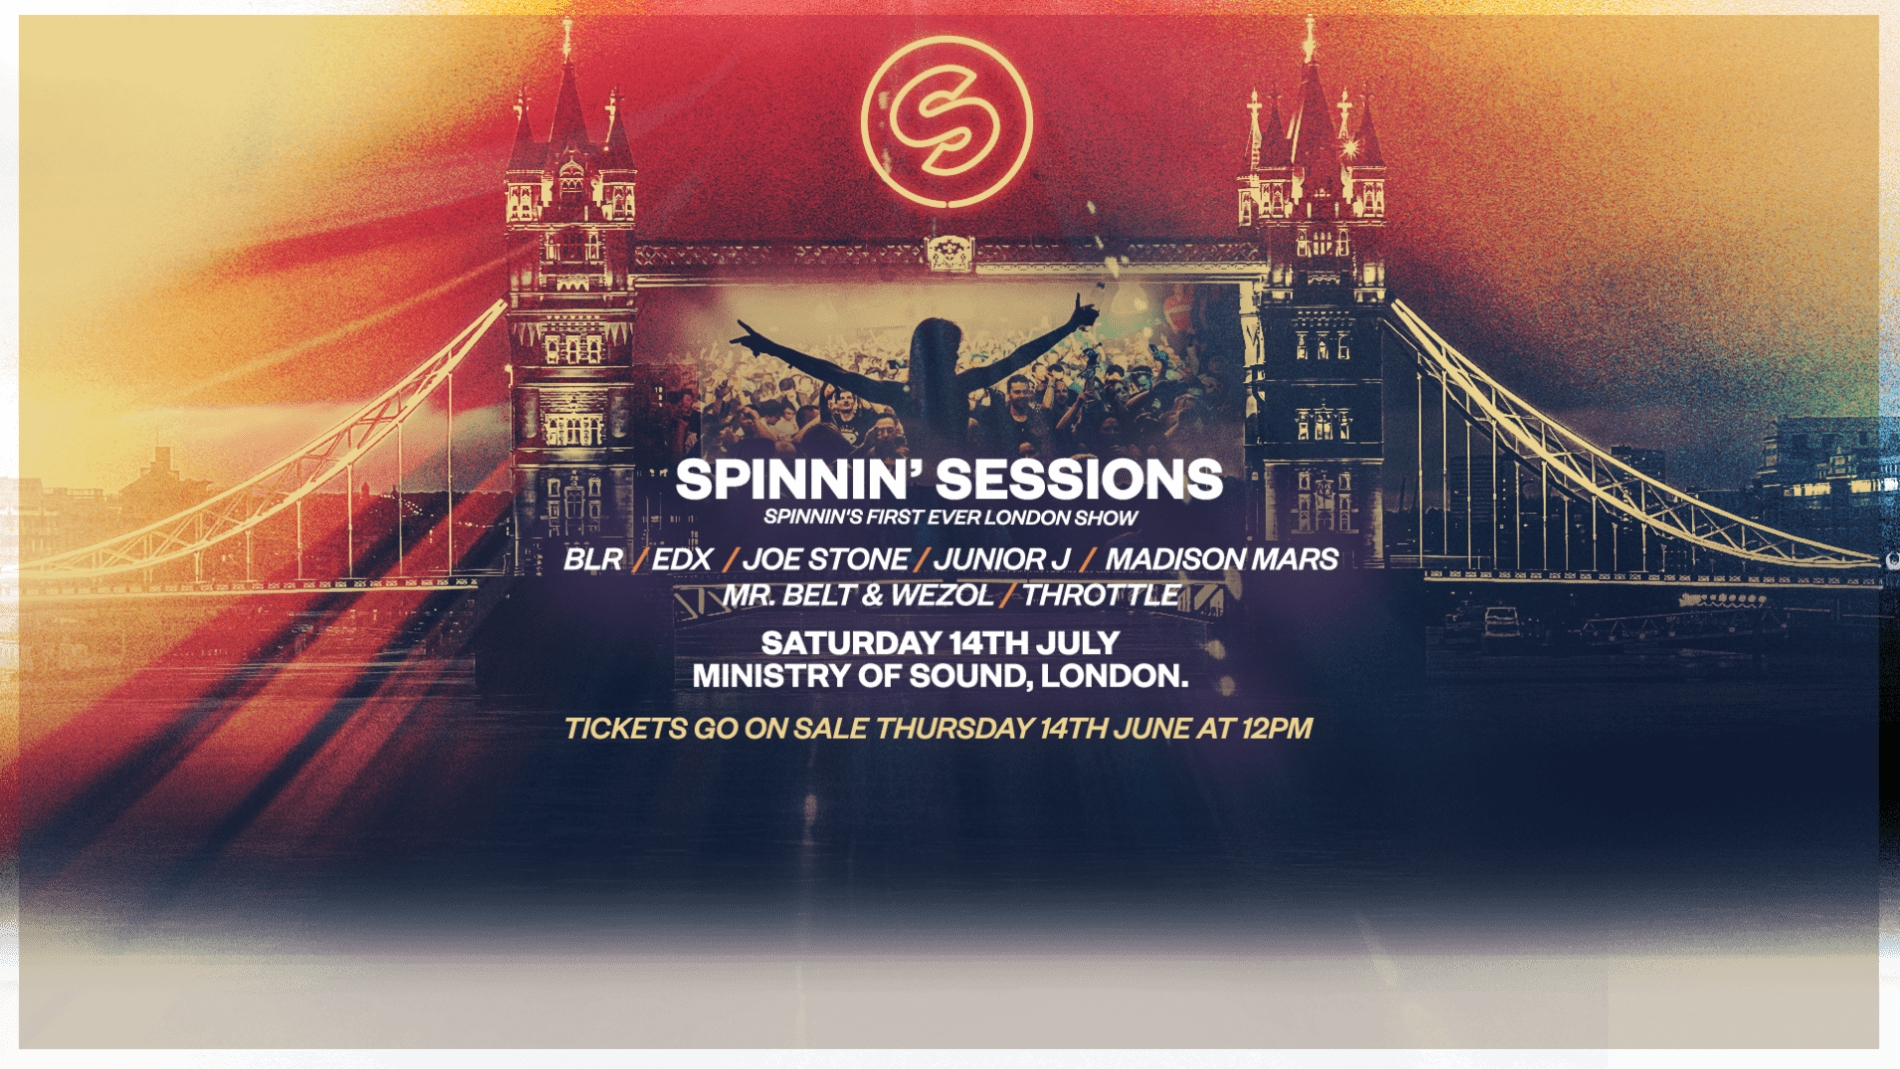 Spinnin' Sessions Spinnin' Sessions London - Ministry of Sound